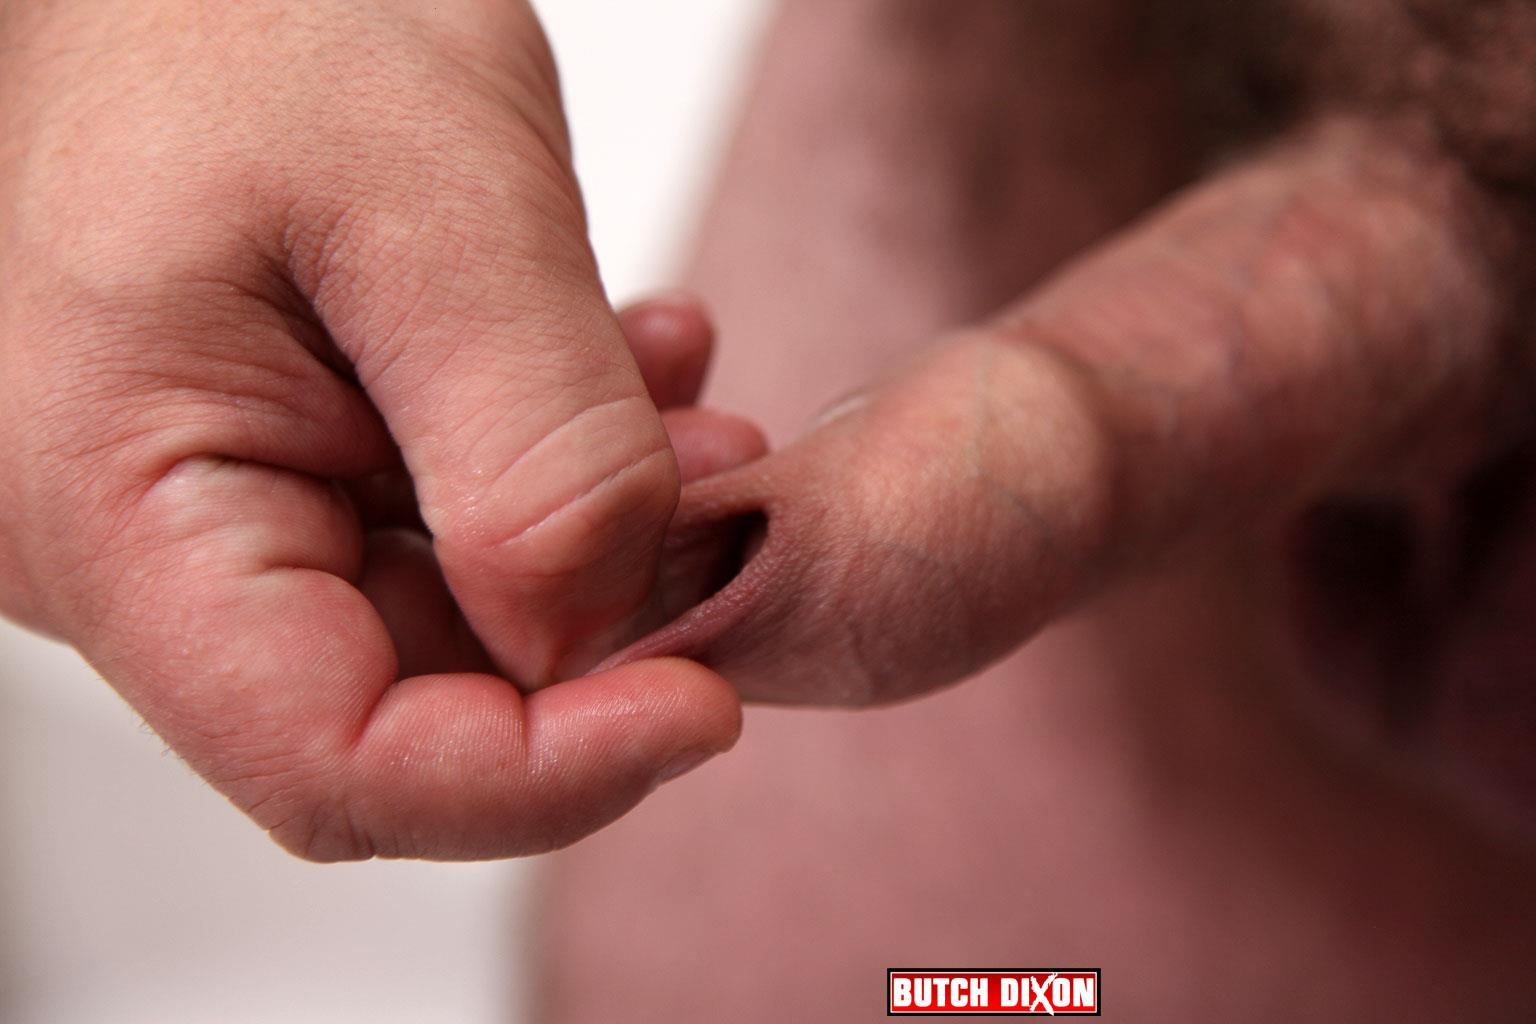 Butch-Dixon-Tommo-Hawk-Chubby-Hairy-Guy-Playing-With-Big-Uncut-Cock-Amateur-Gay-Porn-04 Hairy Chubby Bear Plays With His Thick Uncut Cock And Big Hairy Ass